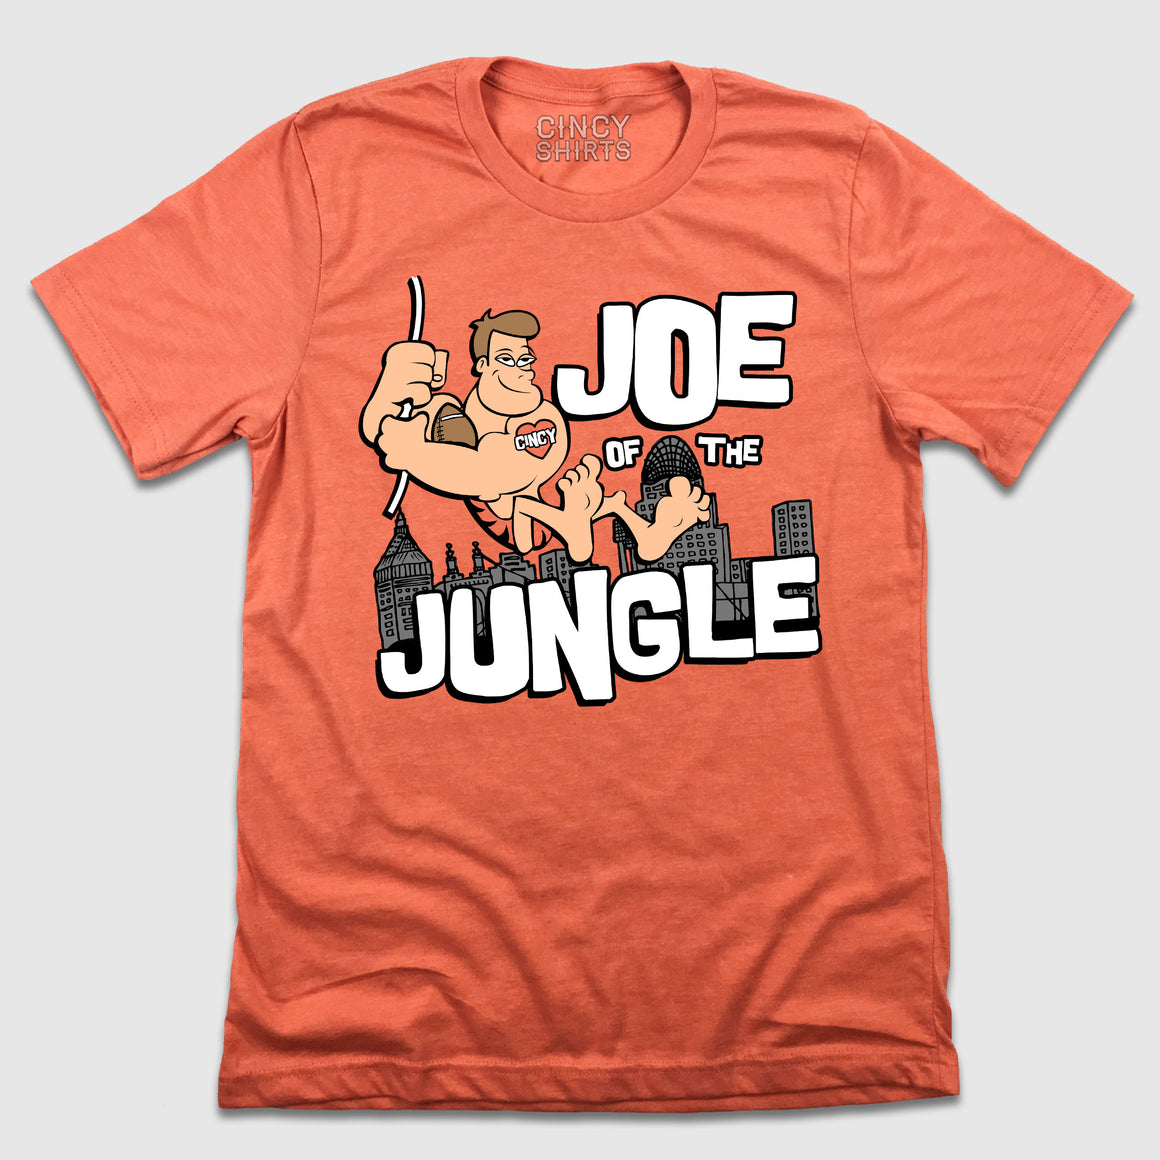 Joe Of The Jungle - Cincy Shirts